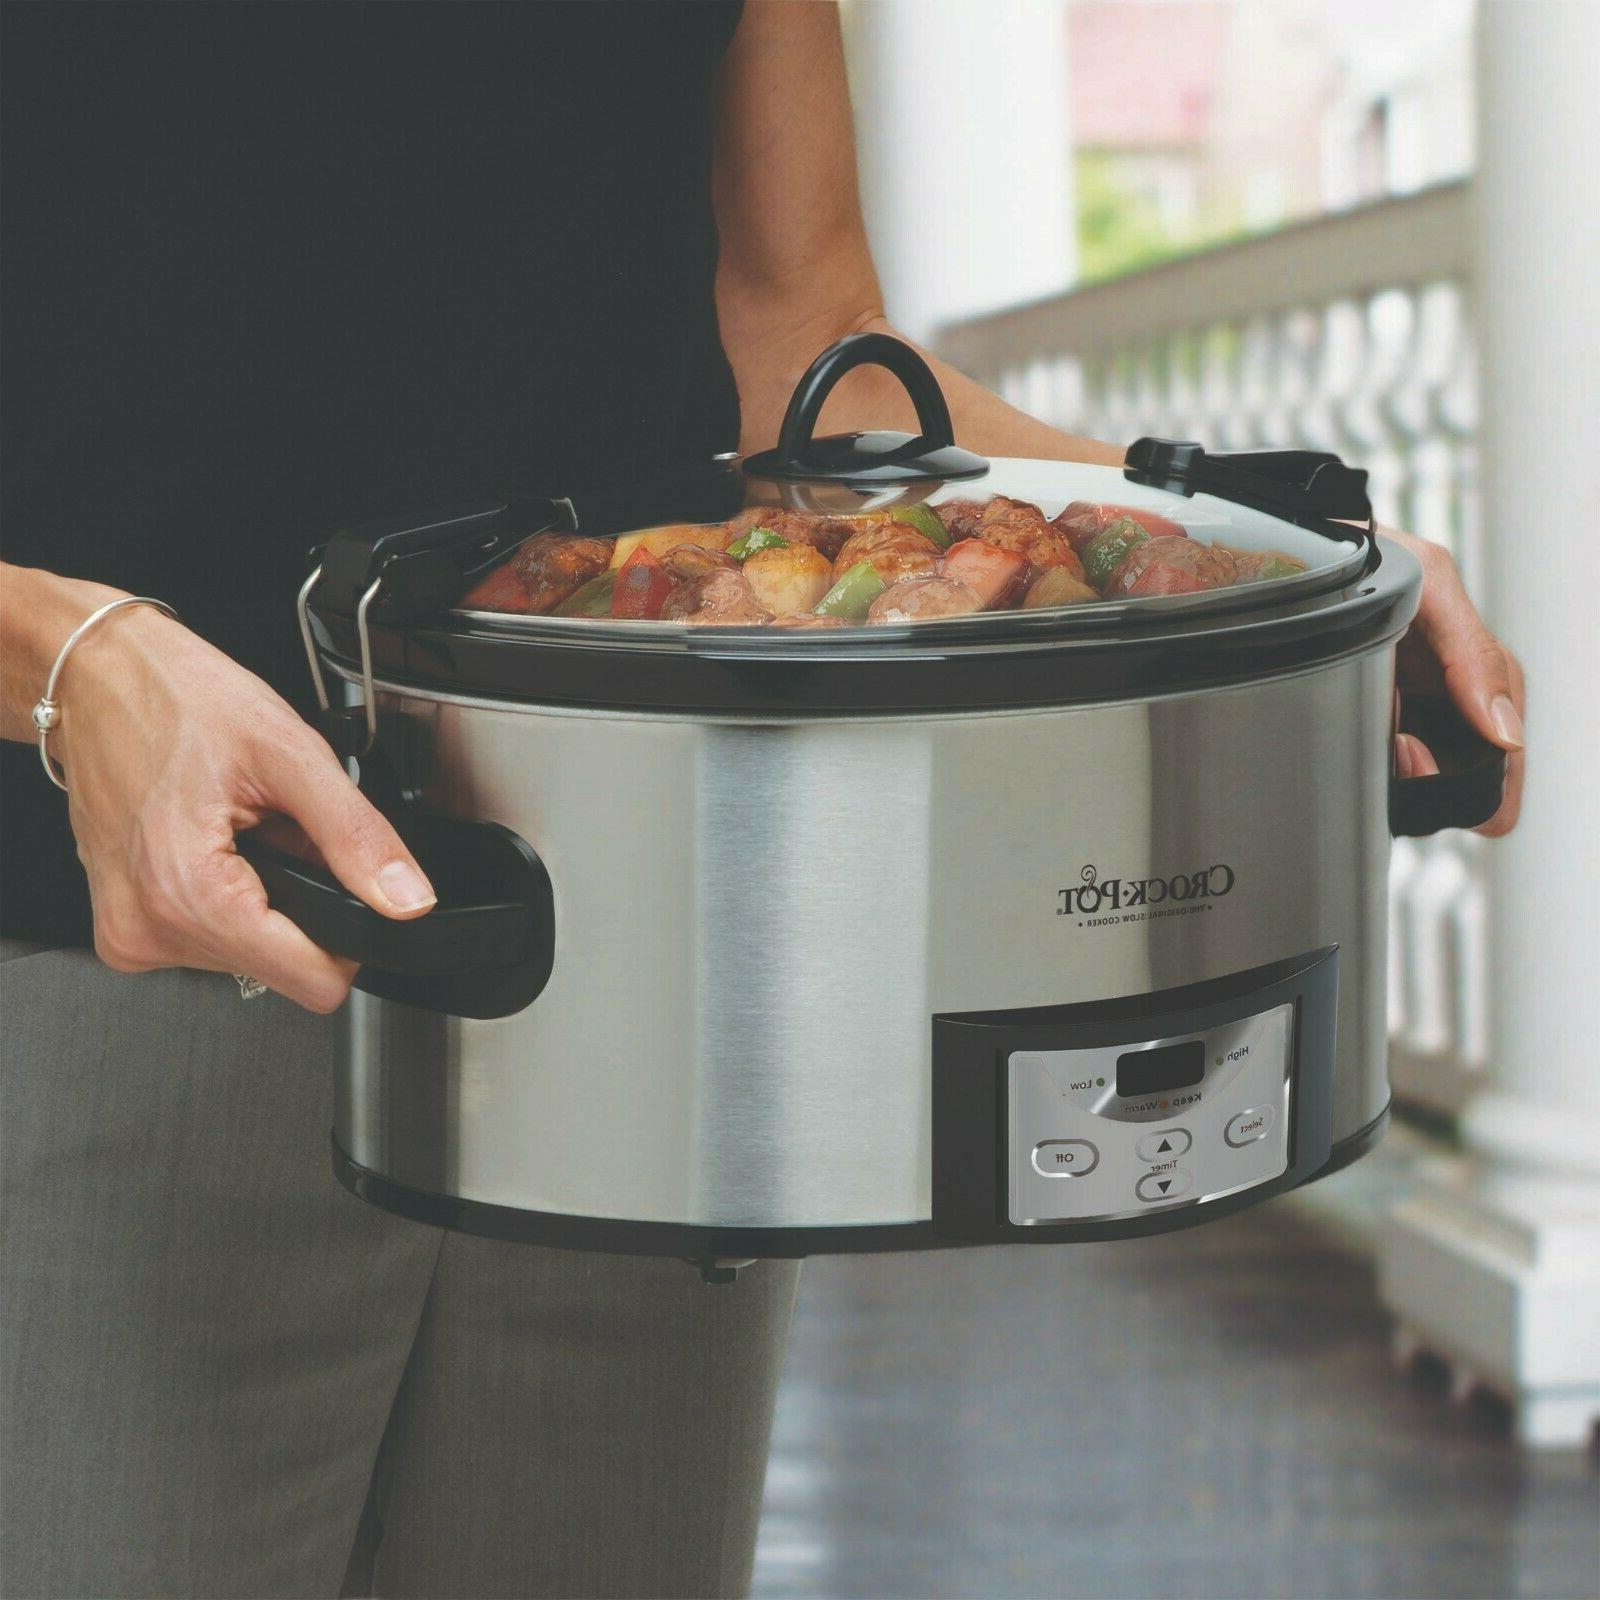 Crock-Pot 6 Quart Programmable Cook & Carry Slow Cooker with